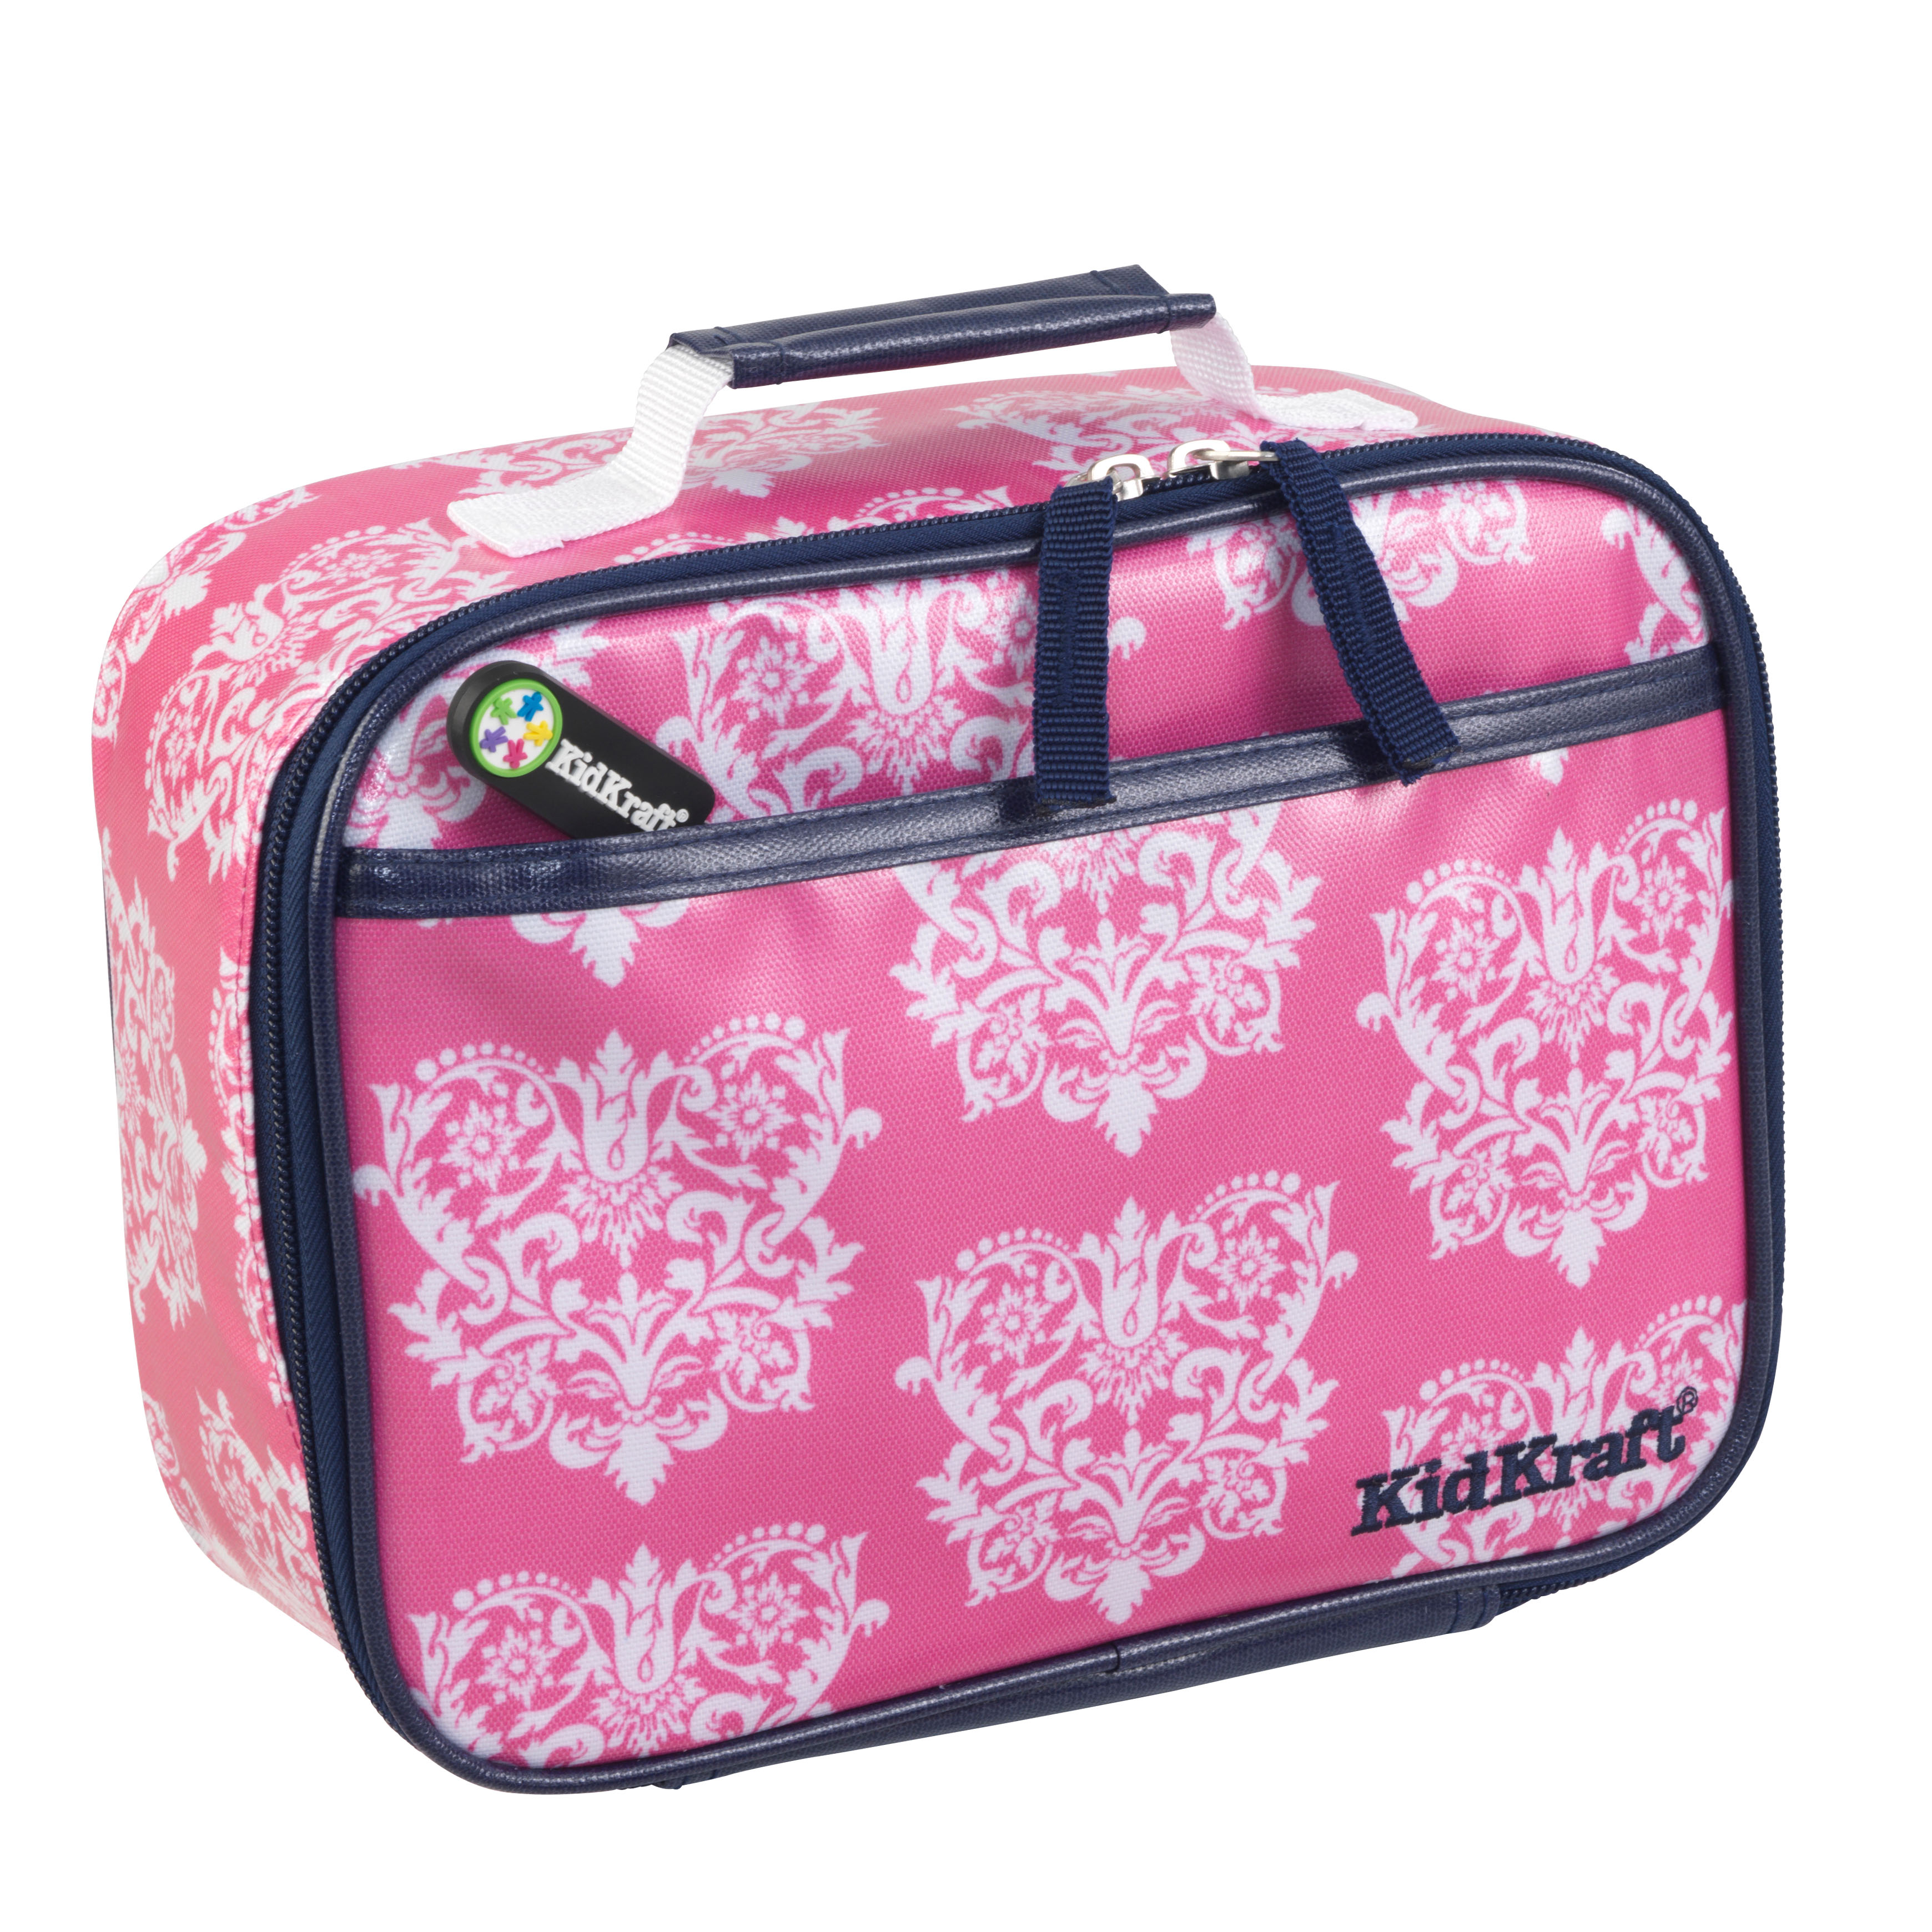 KidKraft Lunch Box - Damask